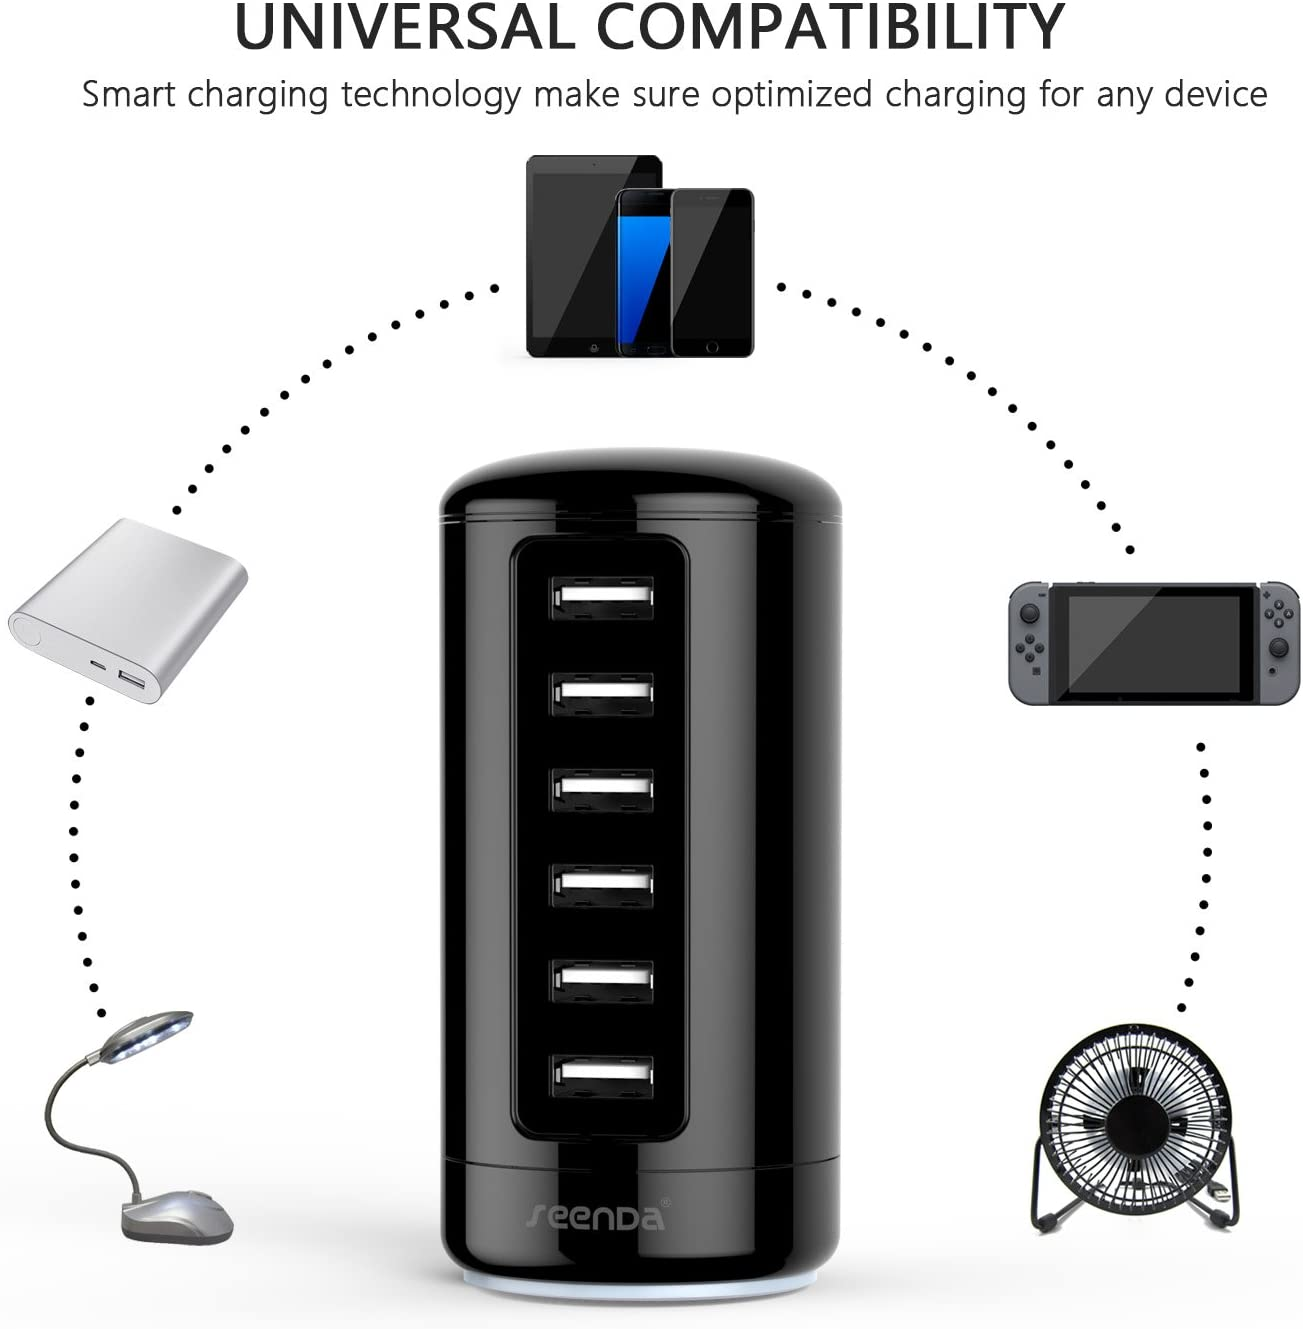 Multi Wall Charger Port 6-Port USB Charging Station with Smart Identification seenda USB Charger White /& Gold